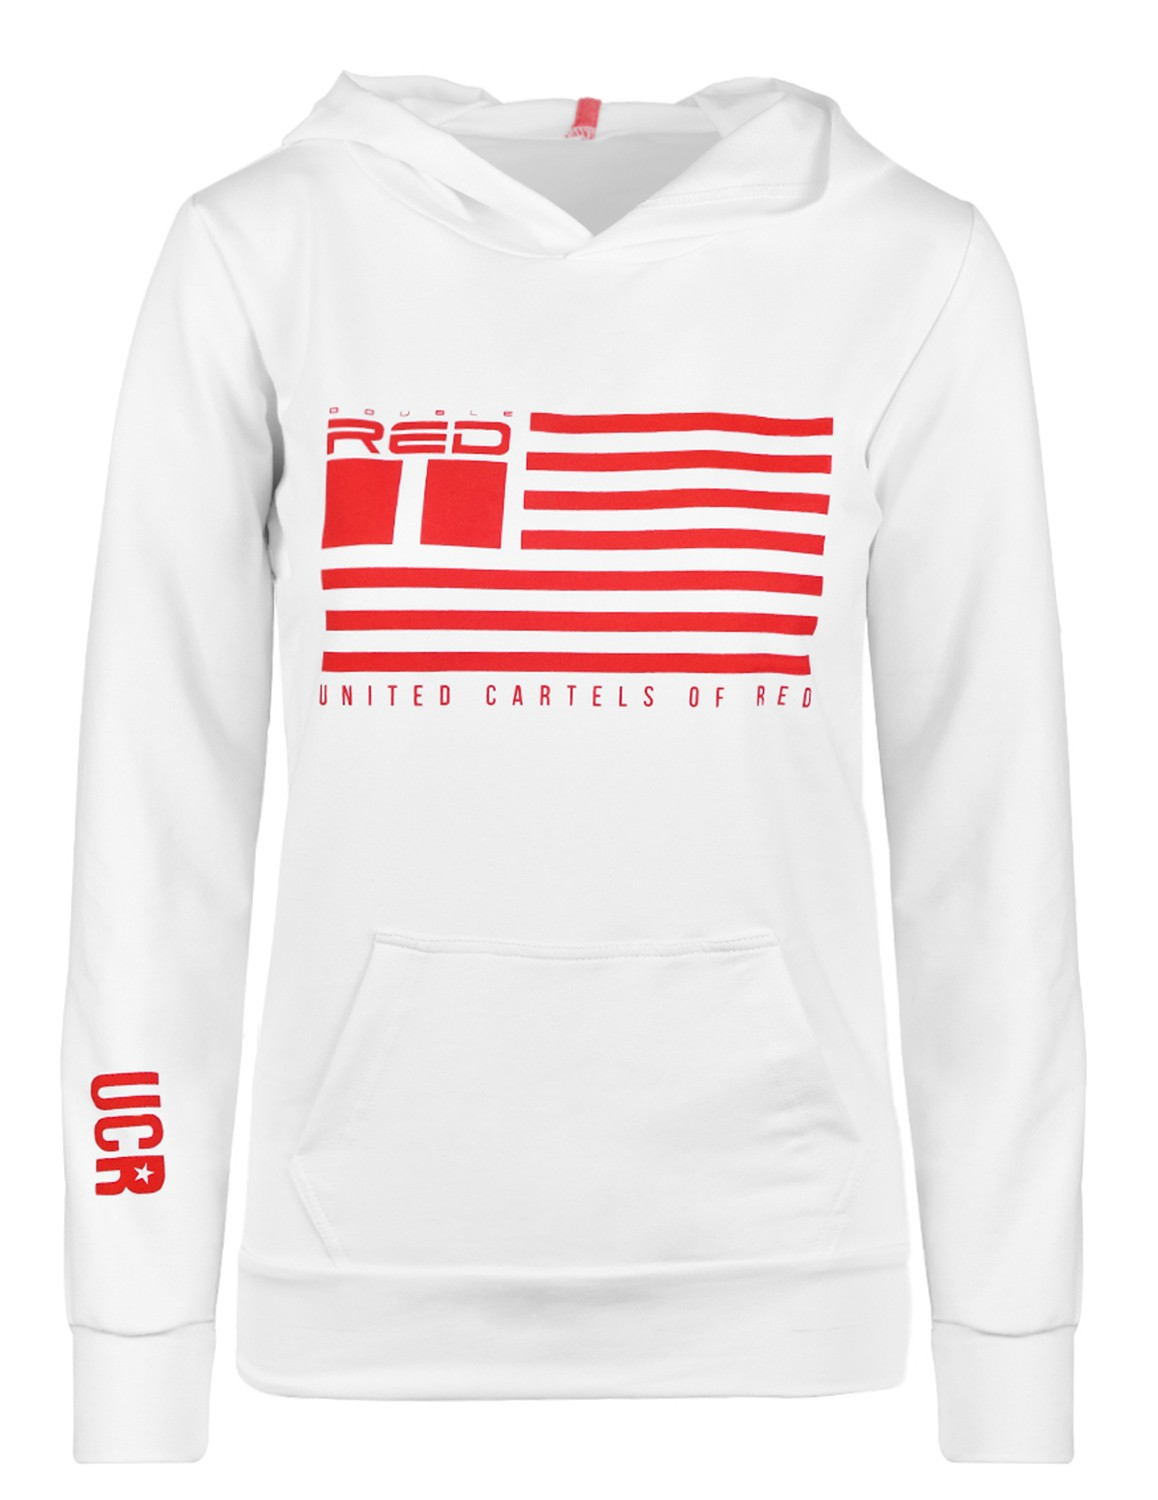 United Cartels Of Red UCR White Hoodie